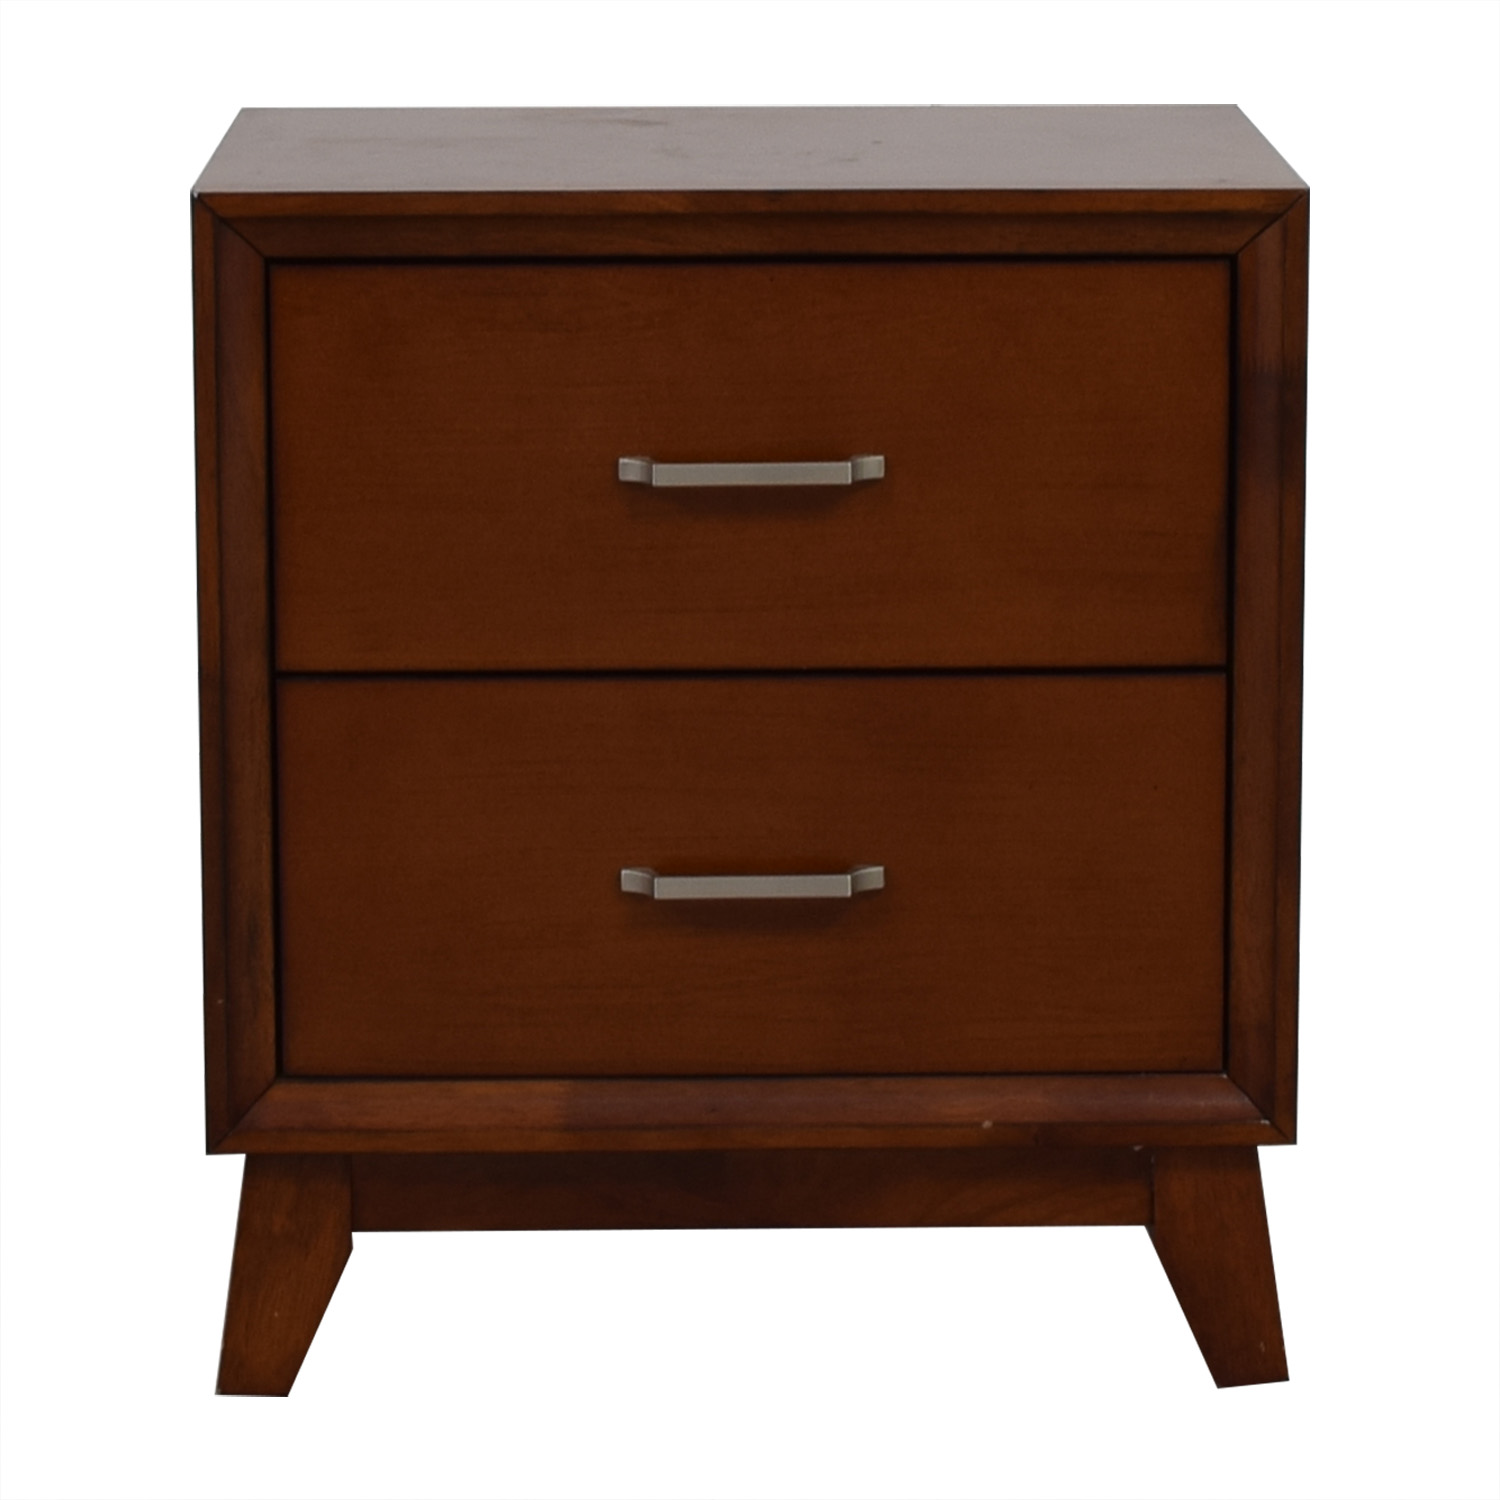 64 Off Homelegance Furniture Home Elegance Soren Nightstand Tables